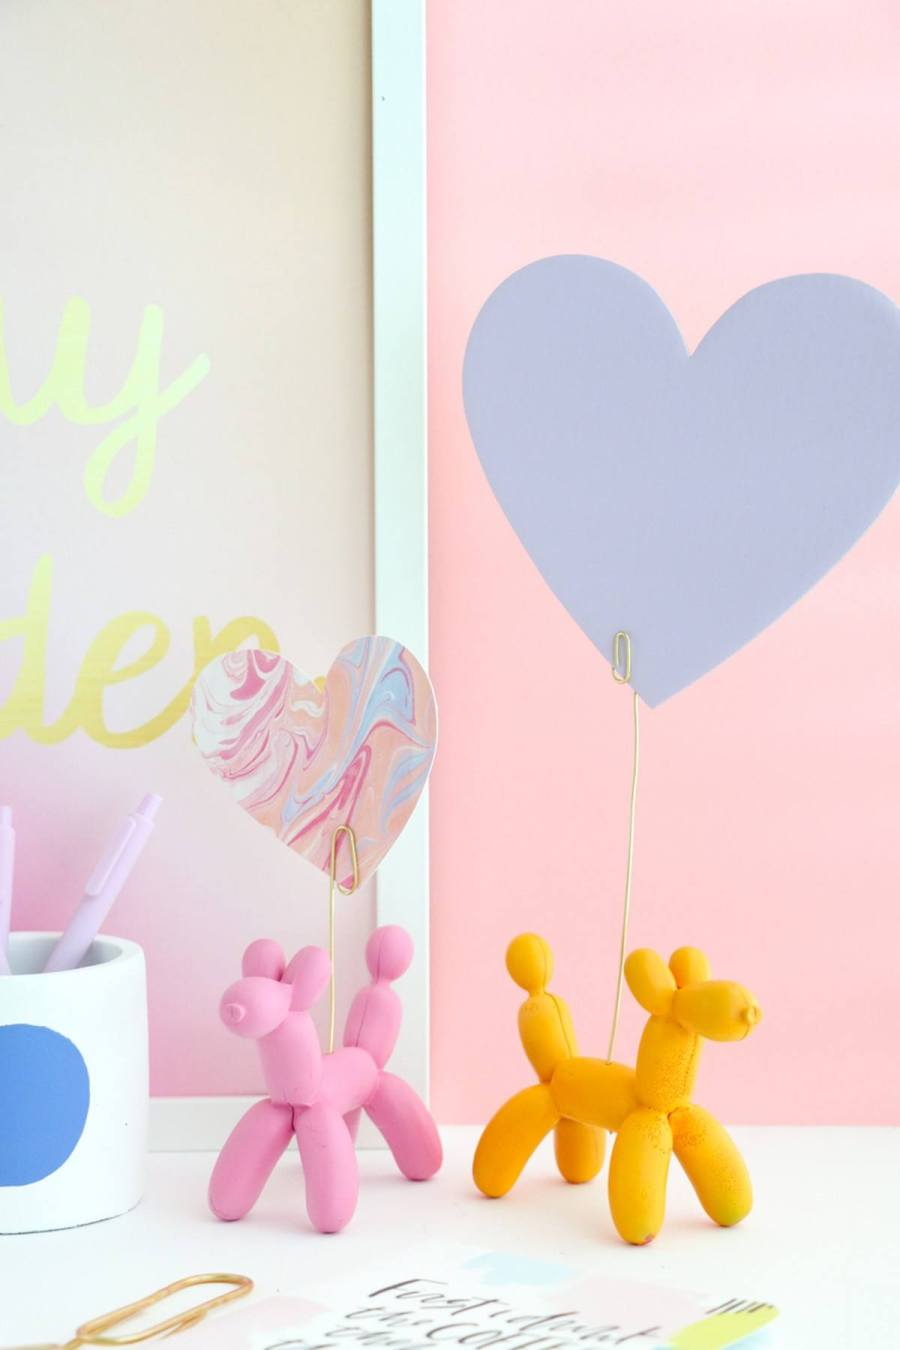 Balloons are something really extraordinary, whimsical, almost torn from fairy tales. They help us shape our greatest memories through splendid decorations, they represent freedom, they summon a positive atmosphere and the child in us all.